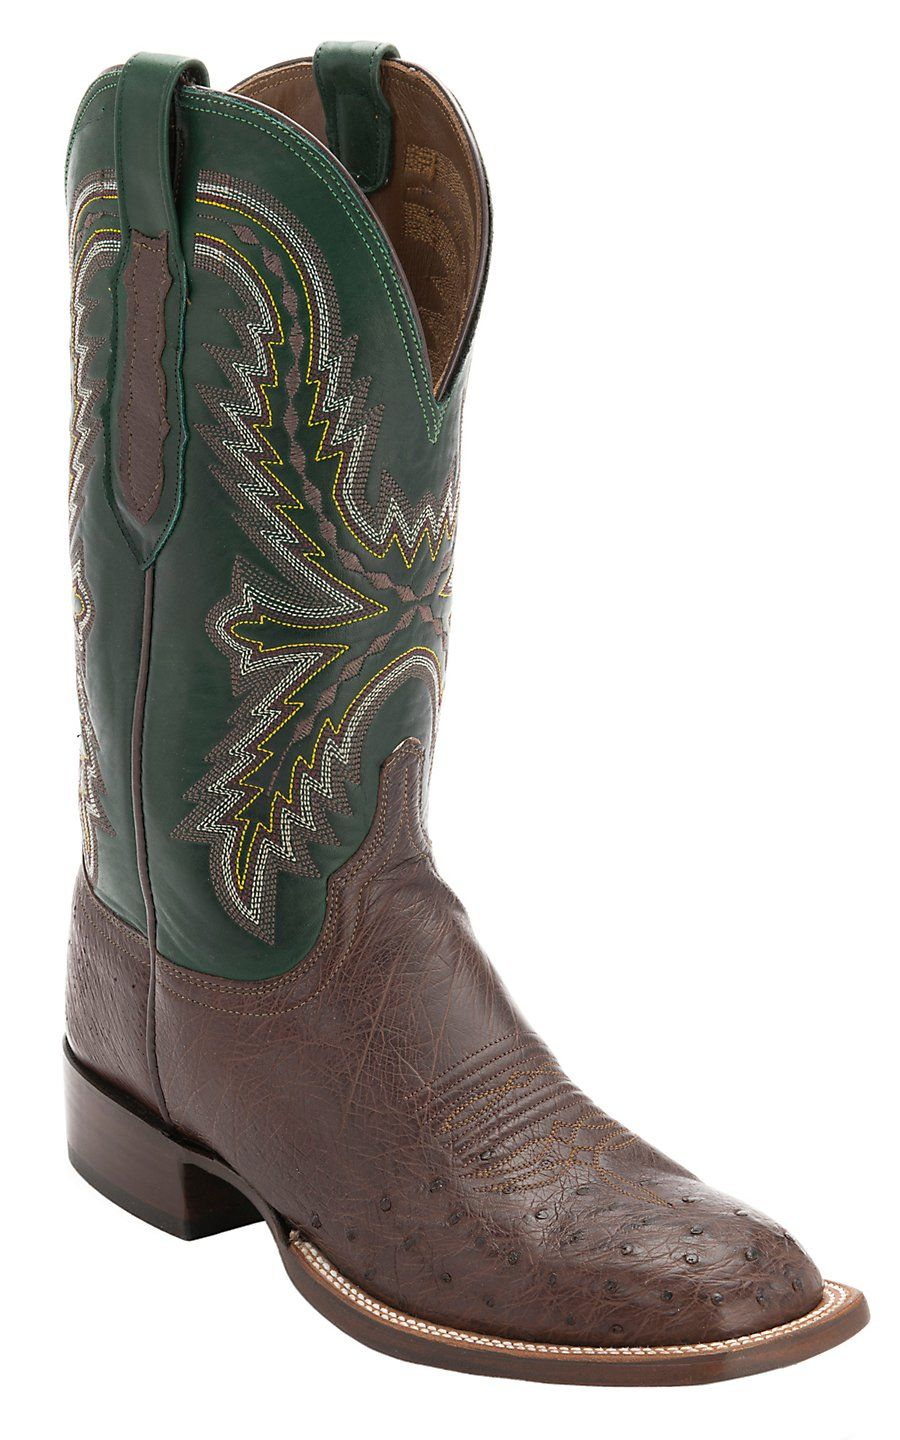 Lucchese 174 Cowboy Collection Men S Sienna Brown Smooth